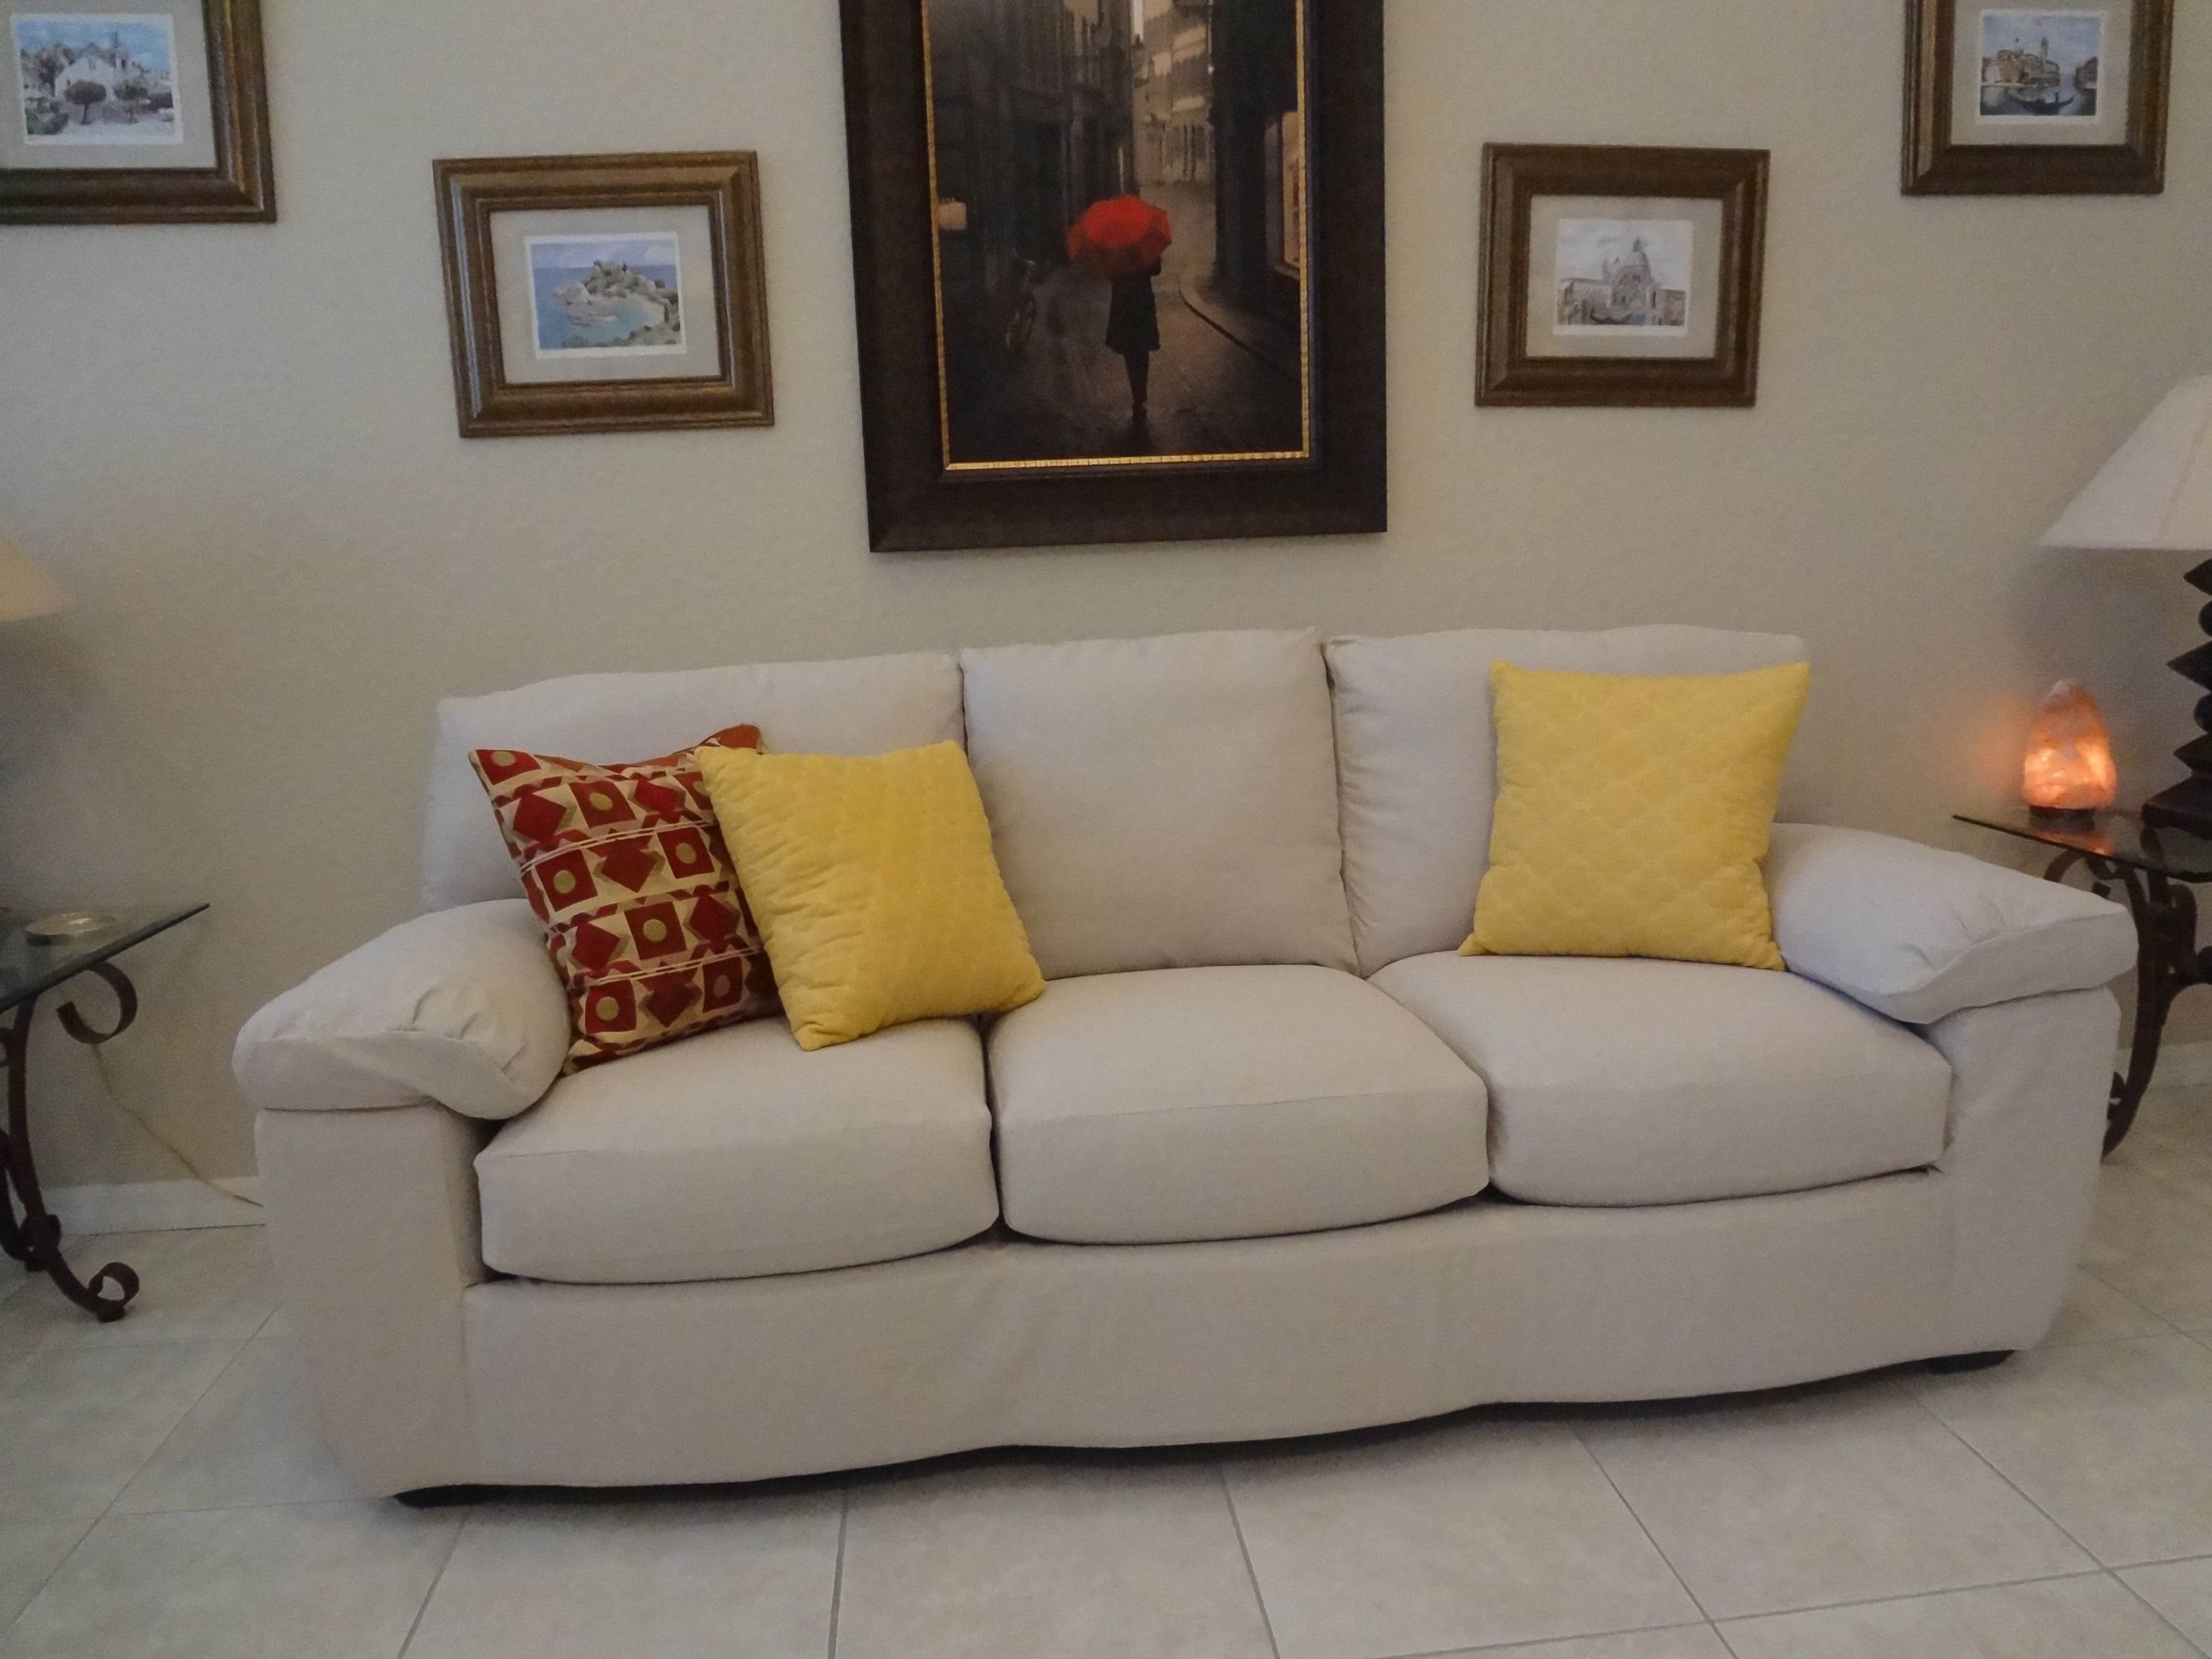 Well here is another drop cloth custom slipcover project plete